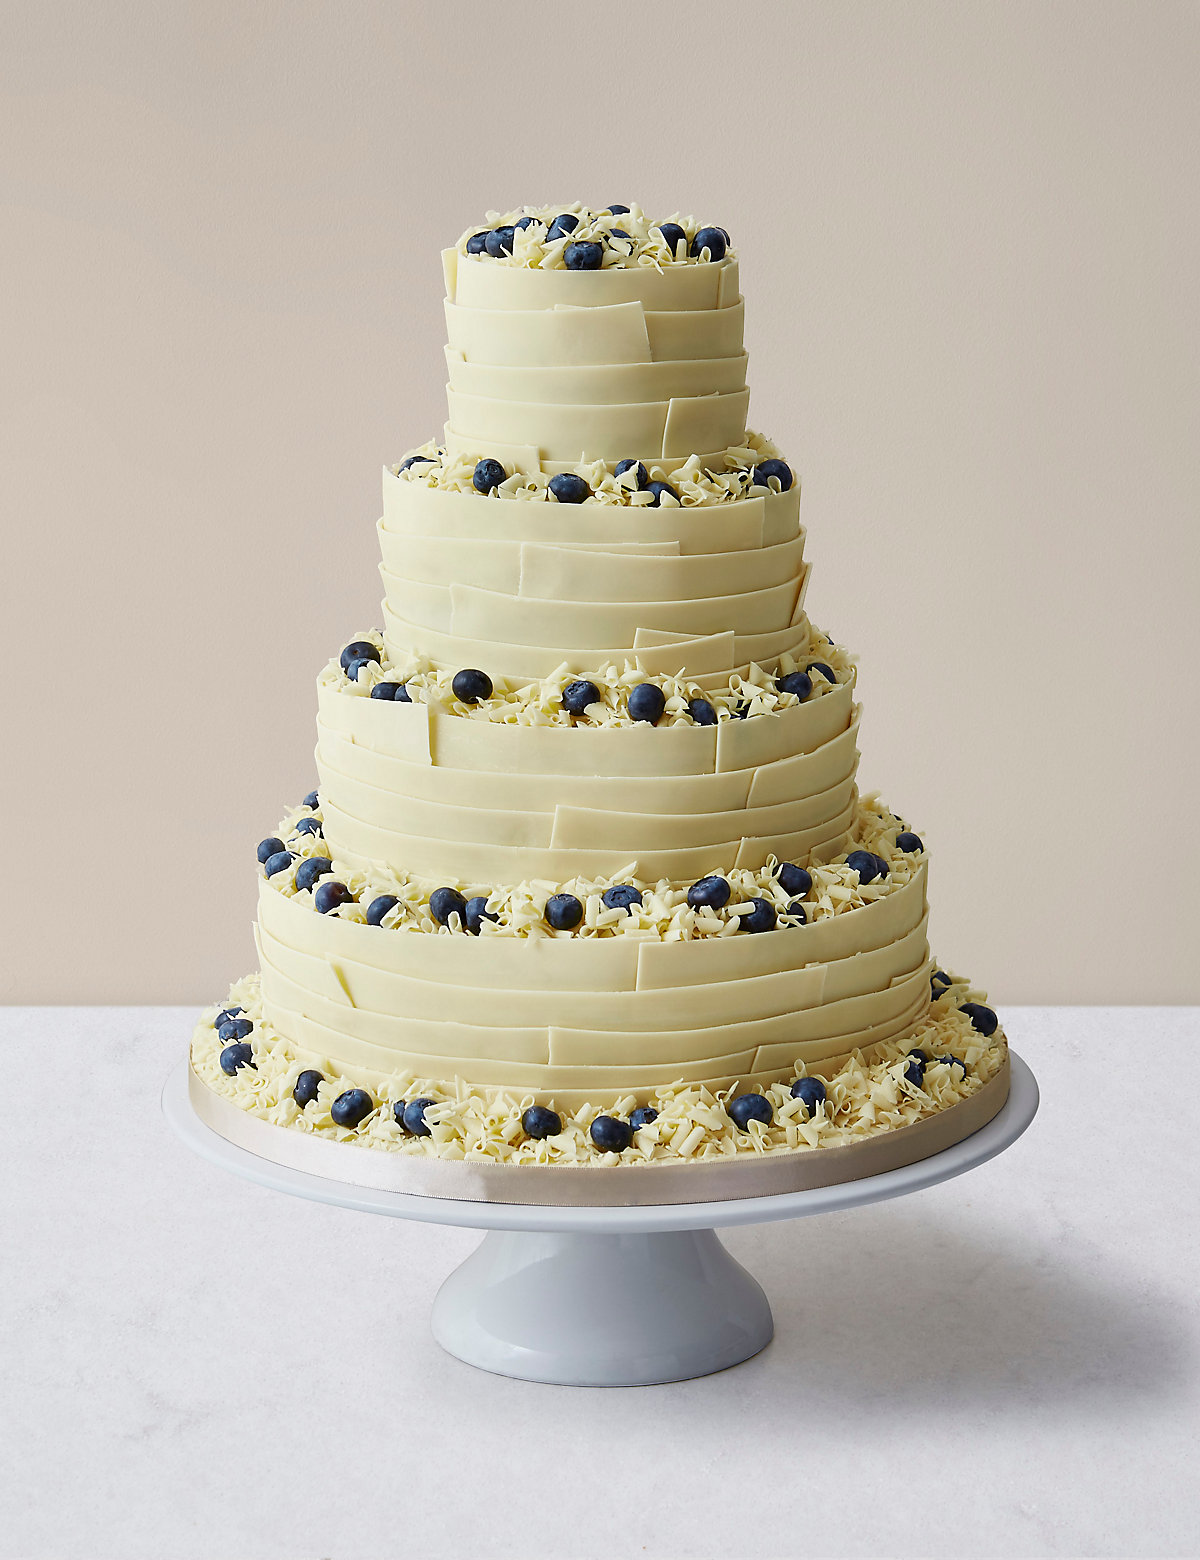 cheap wedding cakes prices buy cheap chocolate cake compare cakes snacks amp 12540